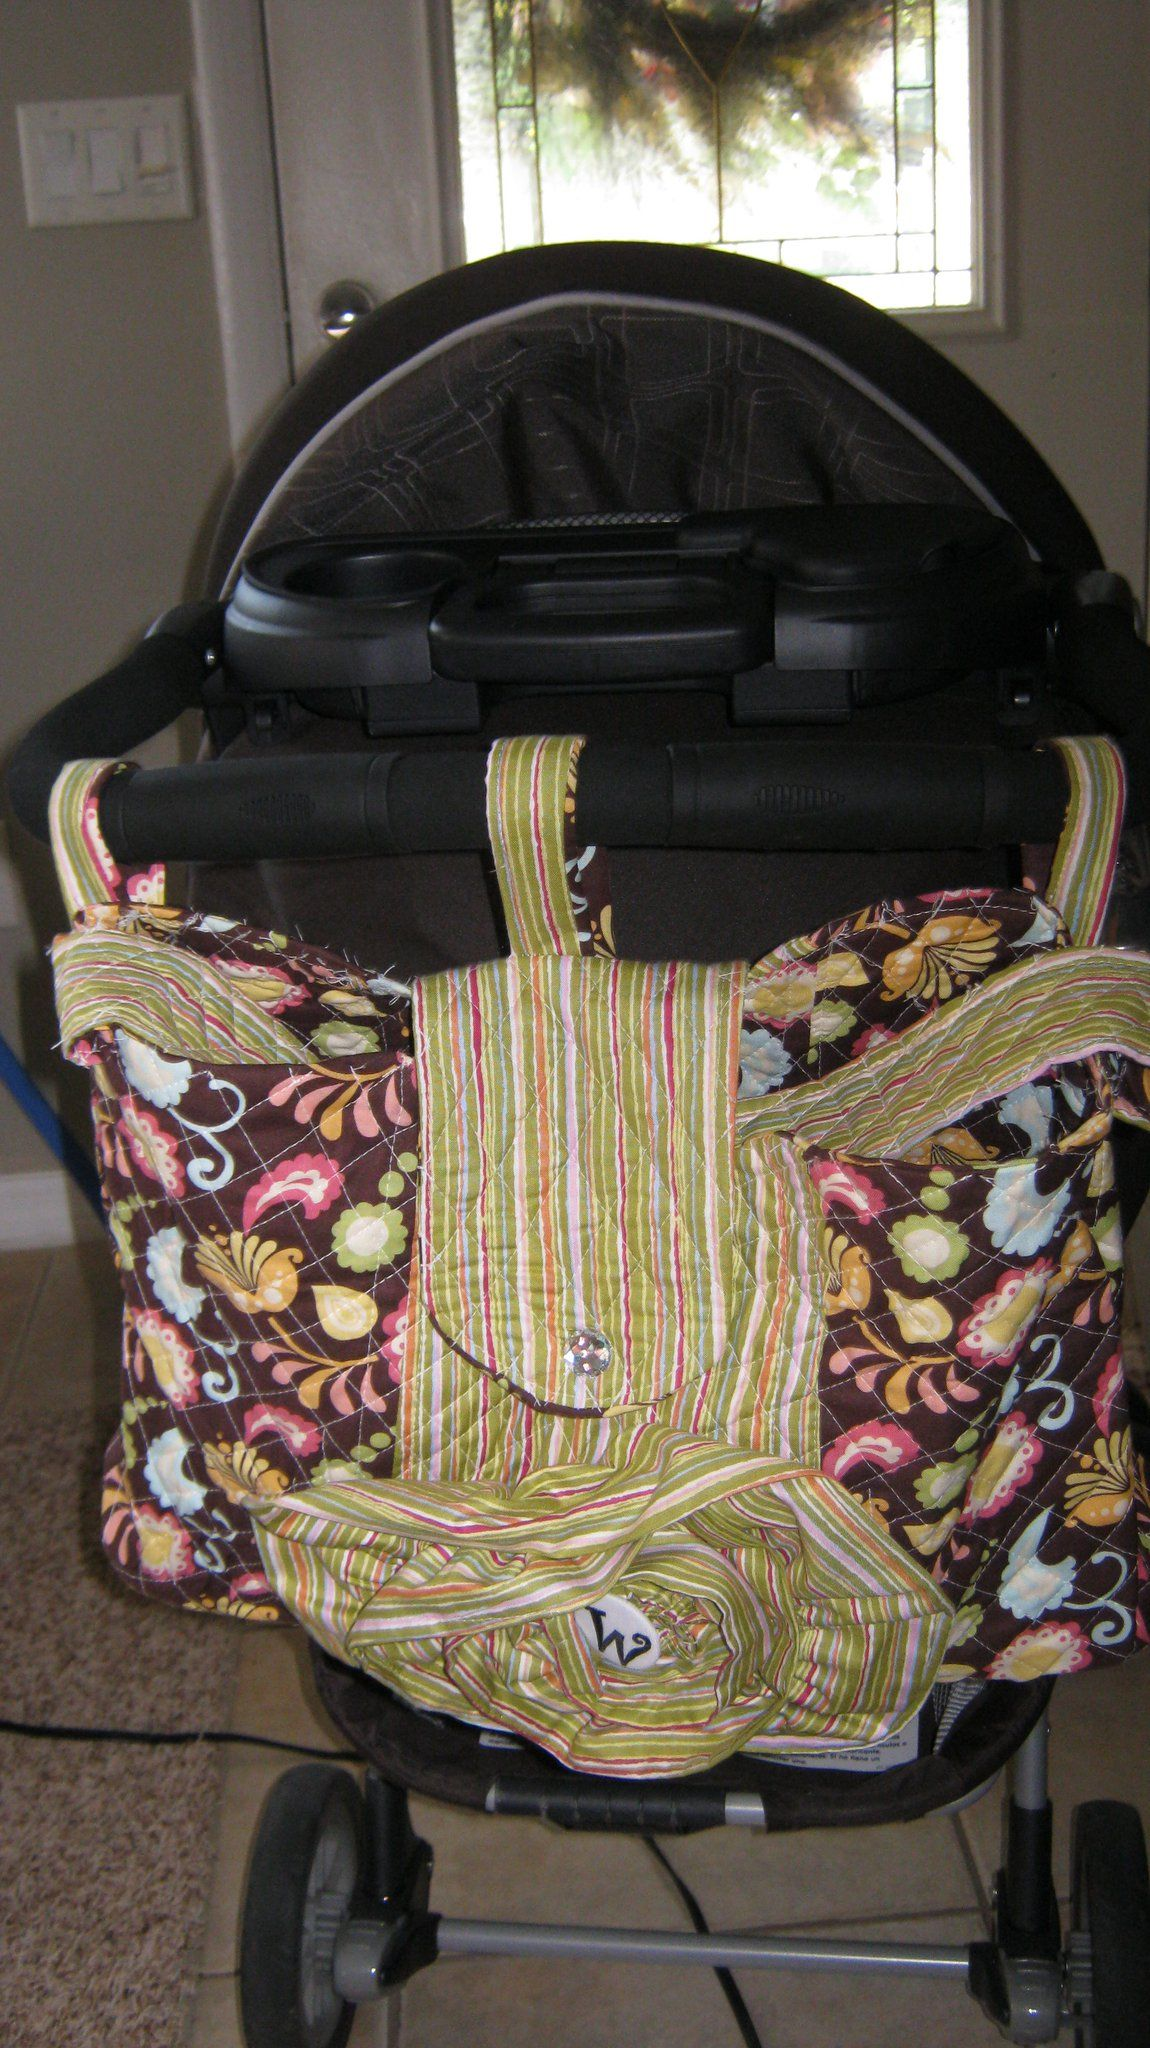 stroller bag....perfect for shopping and library trips